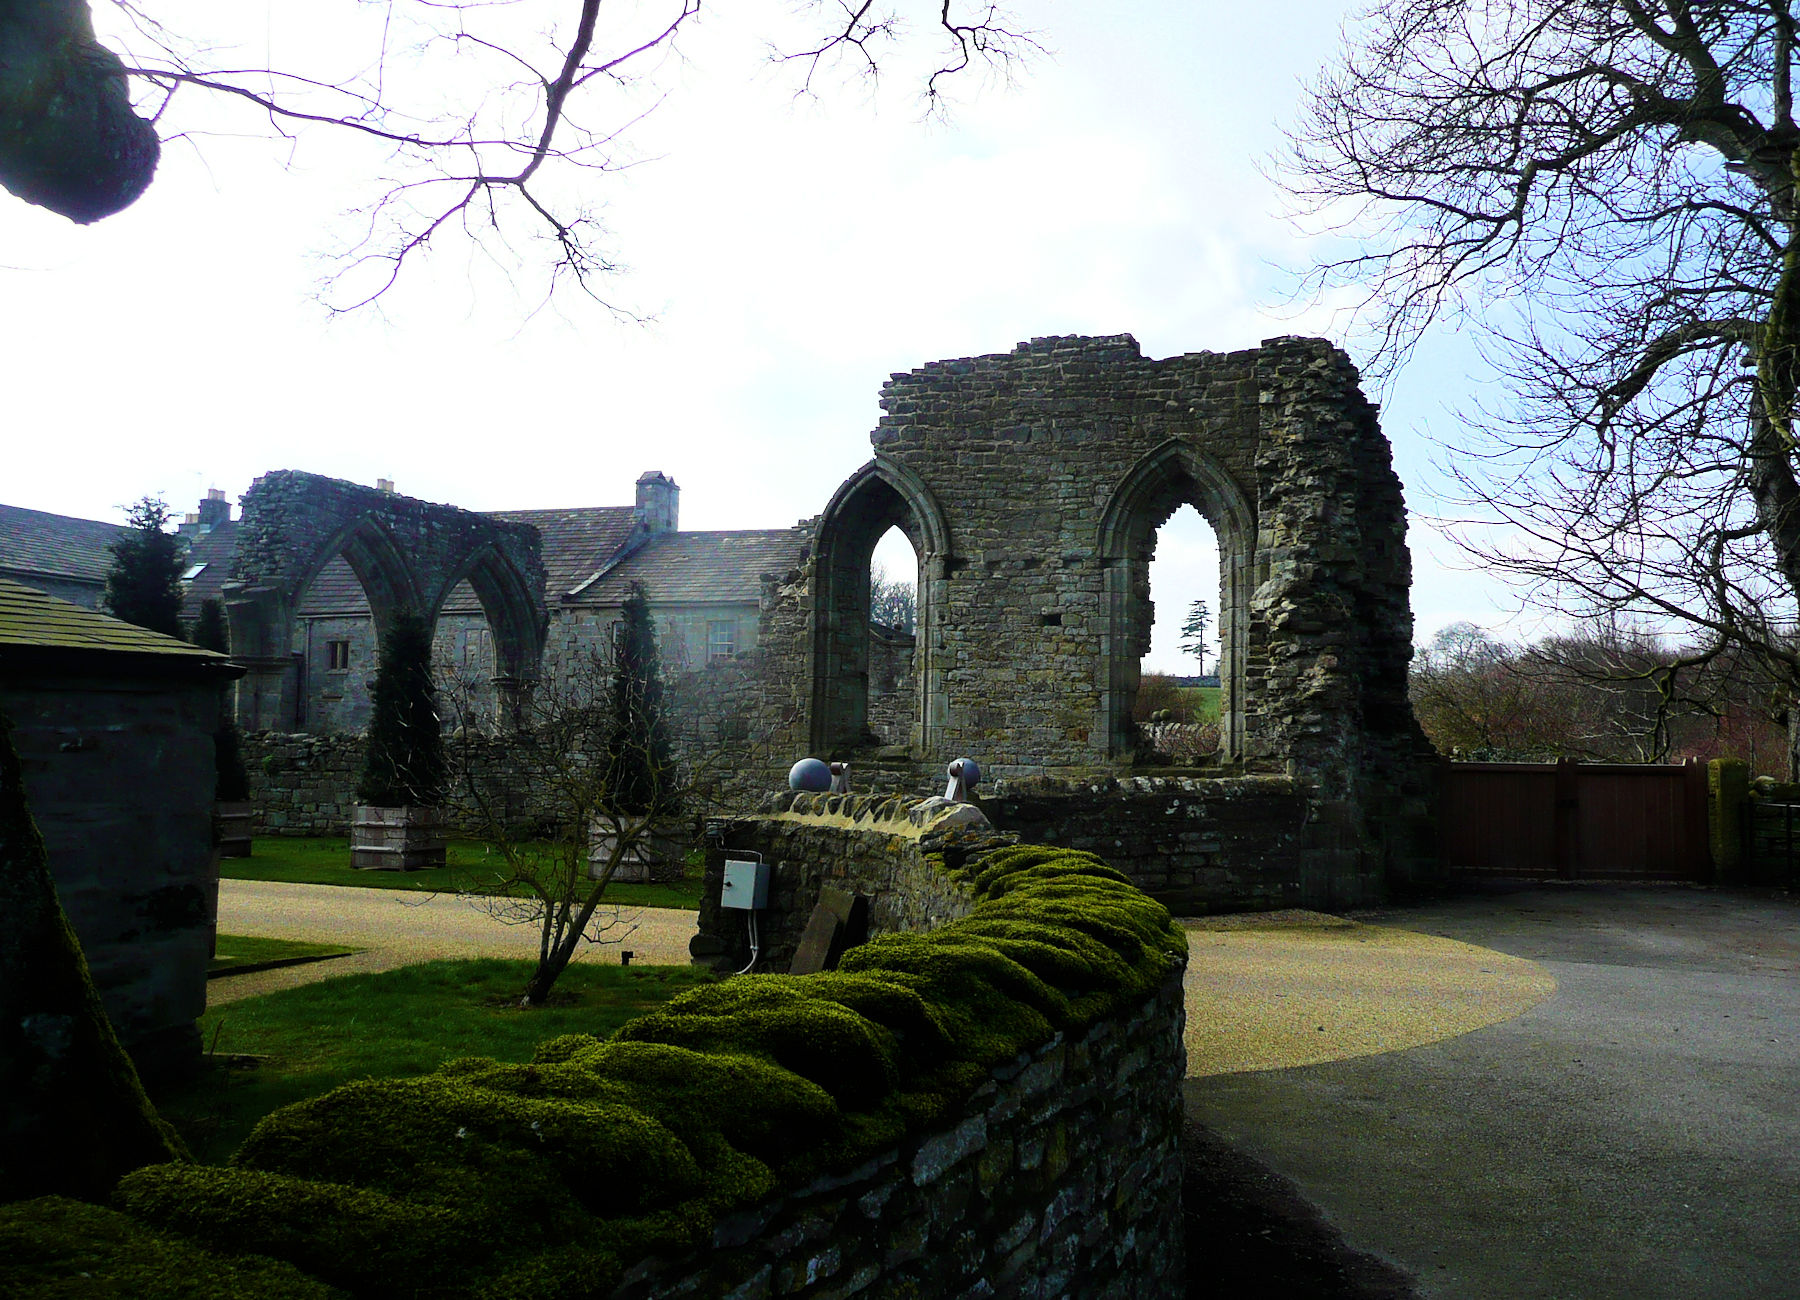 Coverham Abbey